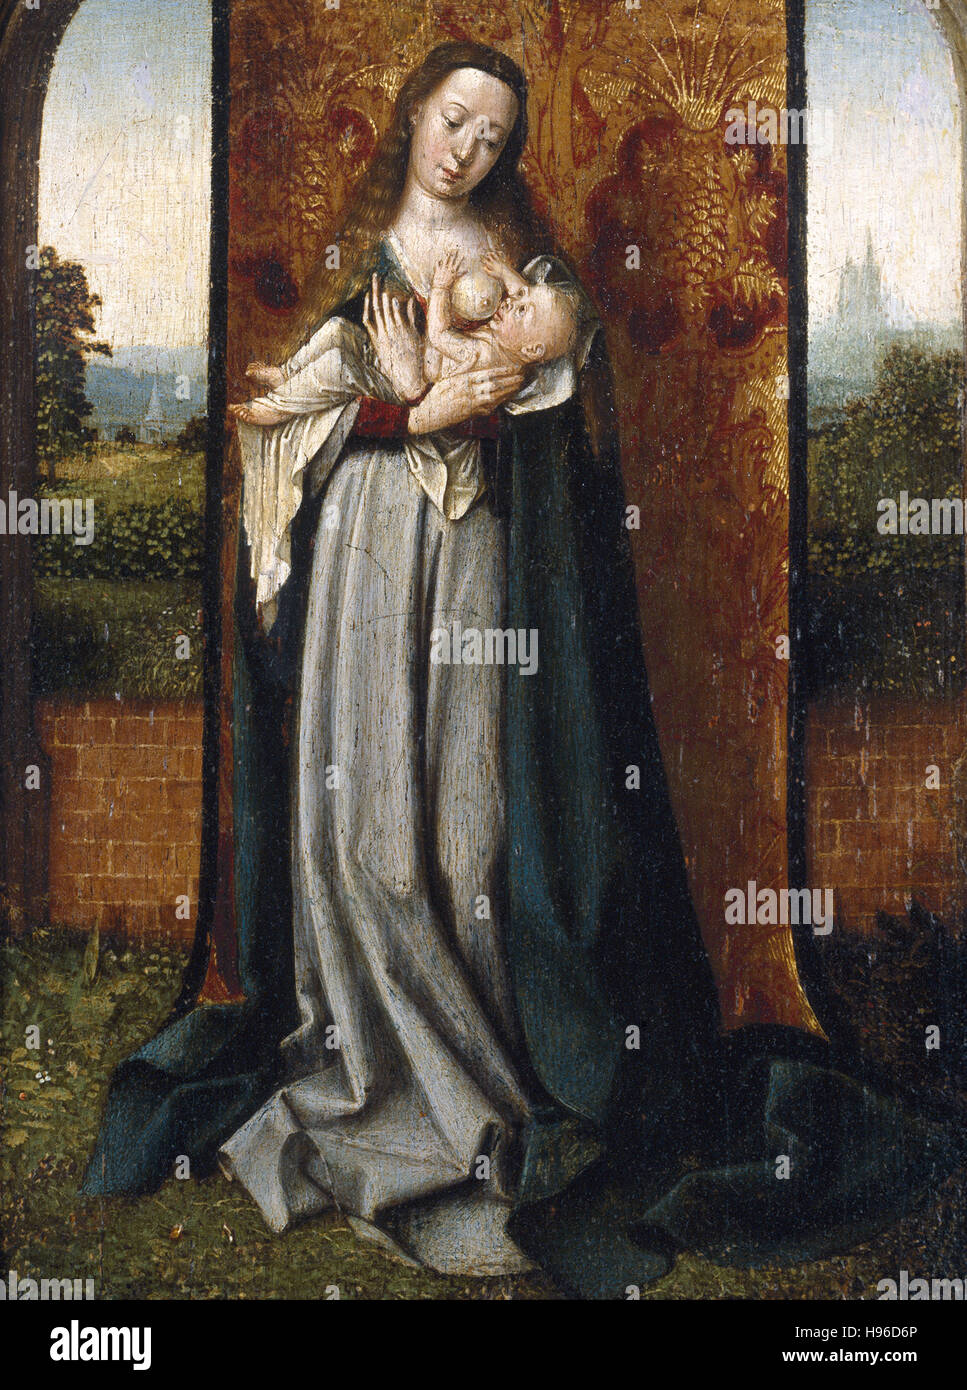 JAN PROVOST - Virgin and Child - 1500 - Stock Image